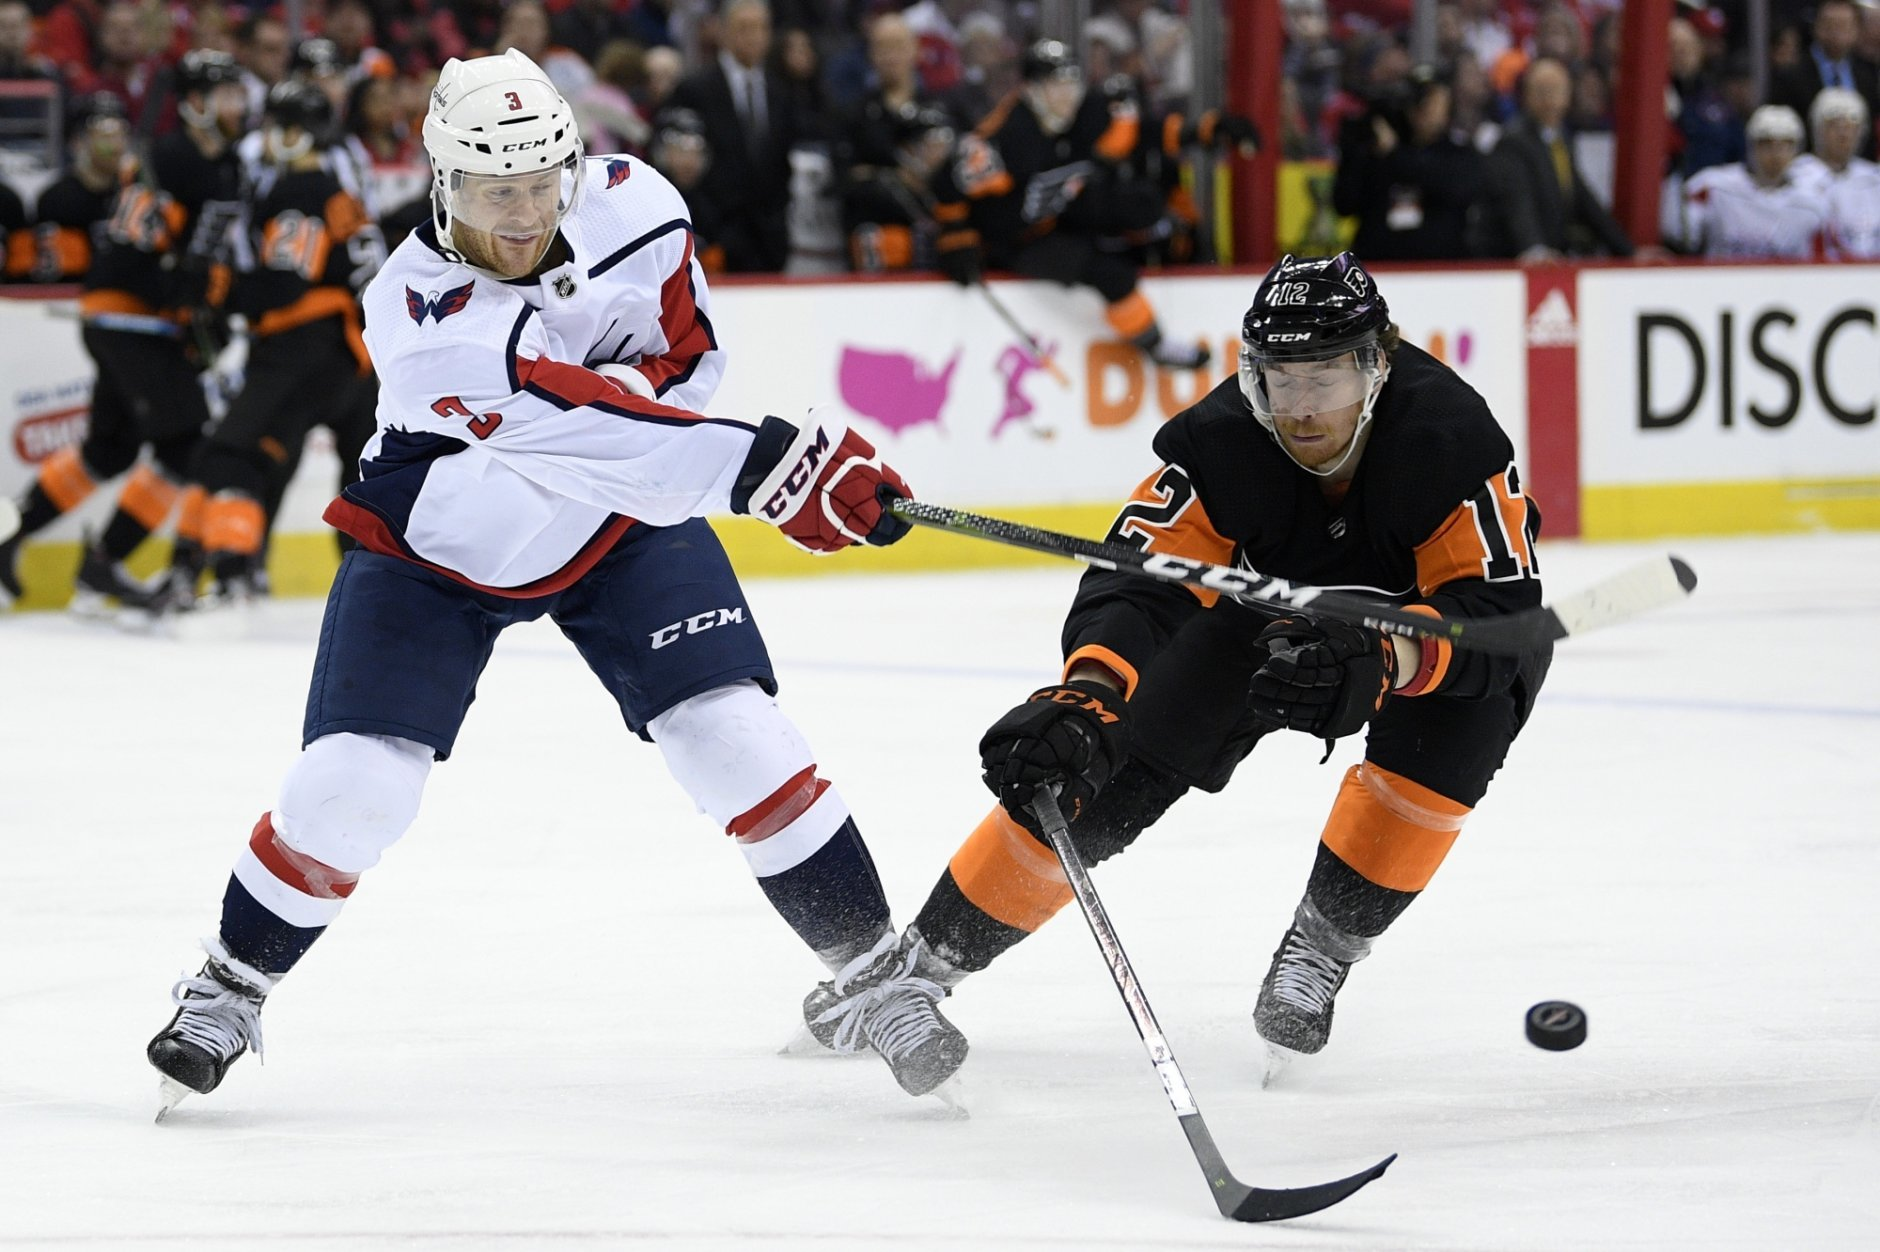 Washington Capitals defenseman Nick Jensen (3) battles for the puck against Philadelphia Flyers left wing Michael Raffl (12) during the second period of an NHL hockey game, Sunday, March 24, 2019, in Washington. (AP Photo/Nick Wass)